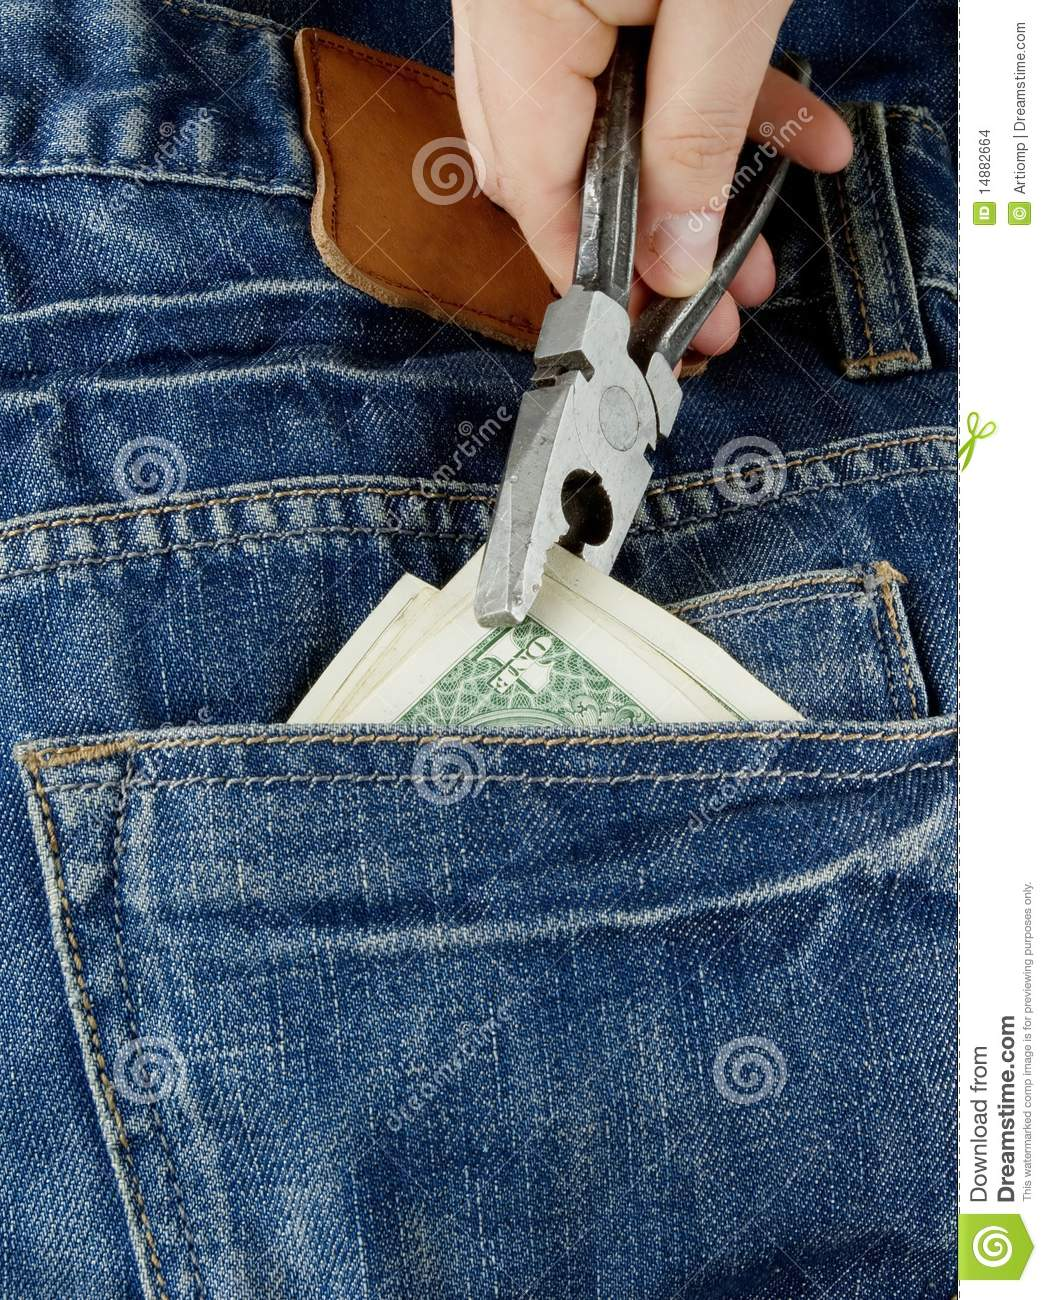 Stealing Money Stock Images - Image: 14882664